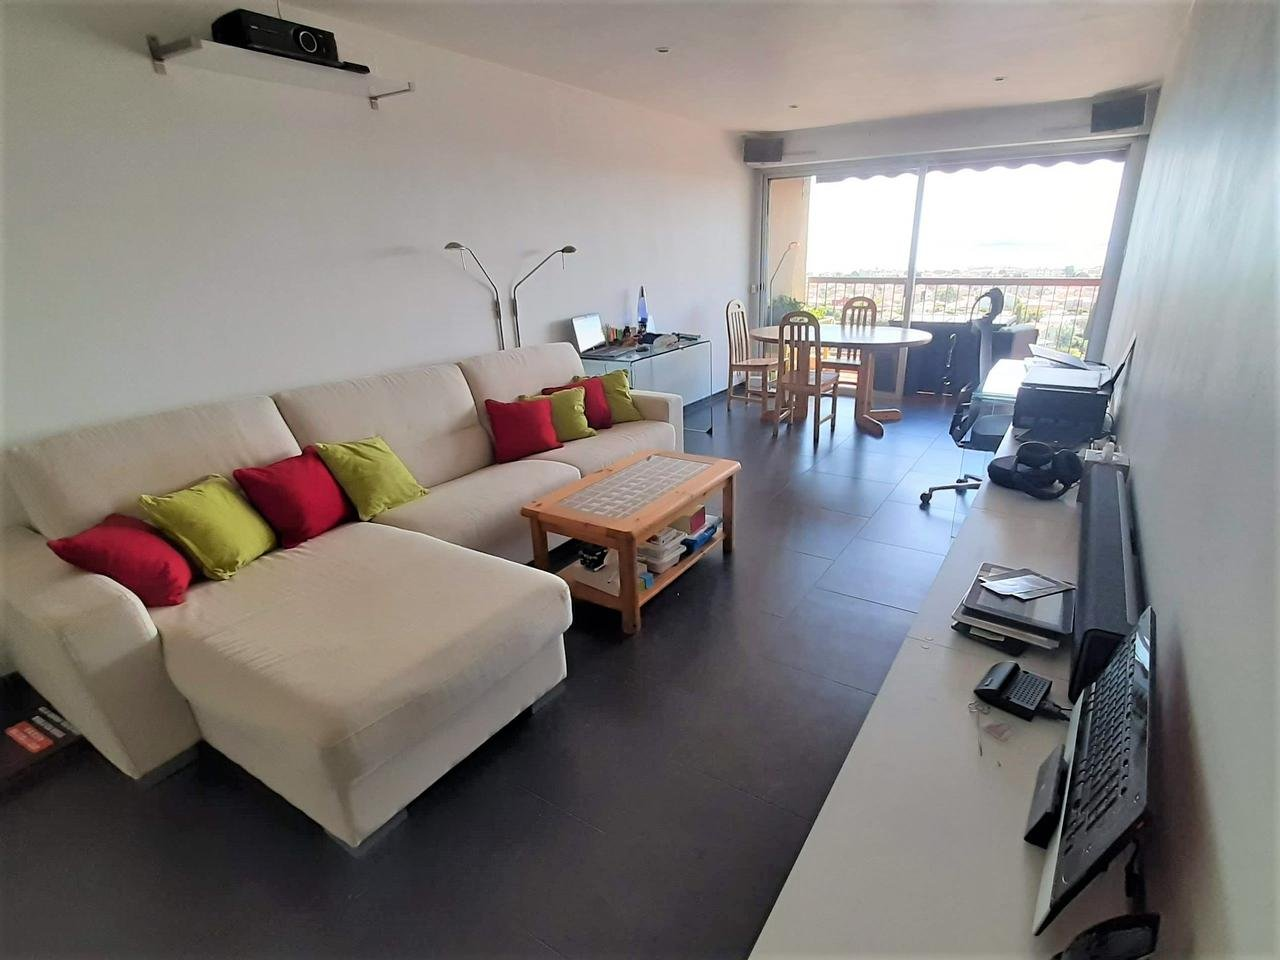 Appartement  3 Rooms 66.8m2  for sale   325 000 €